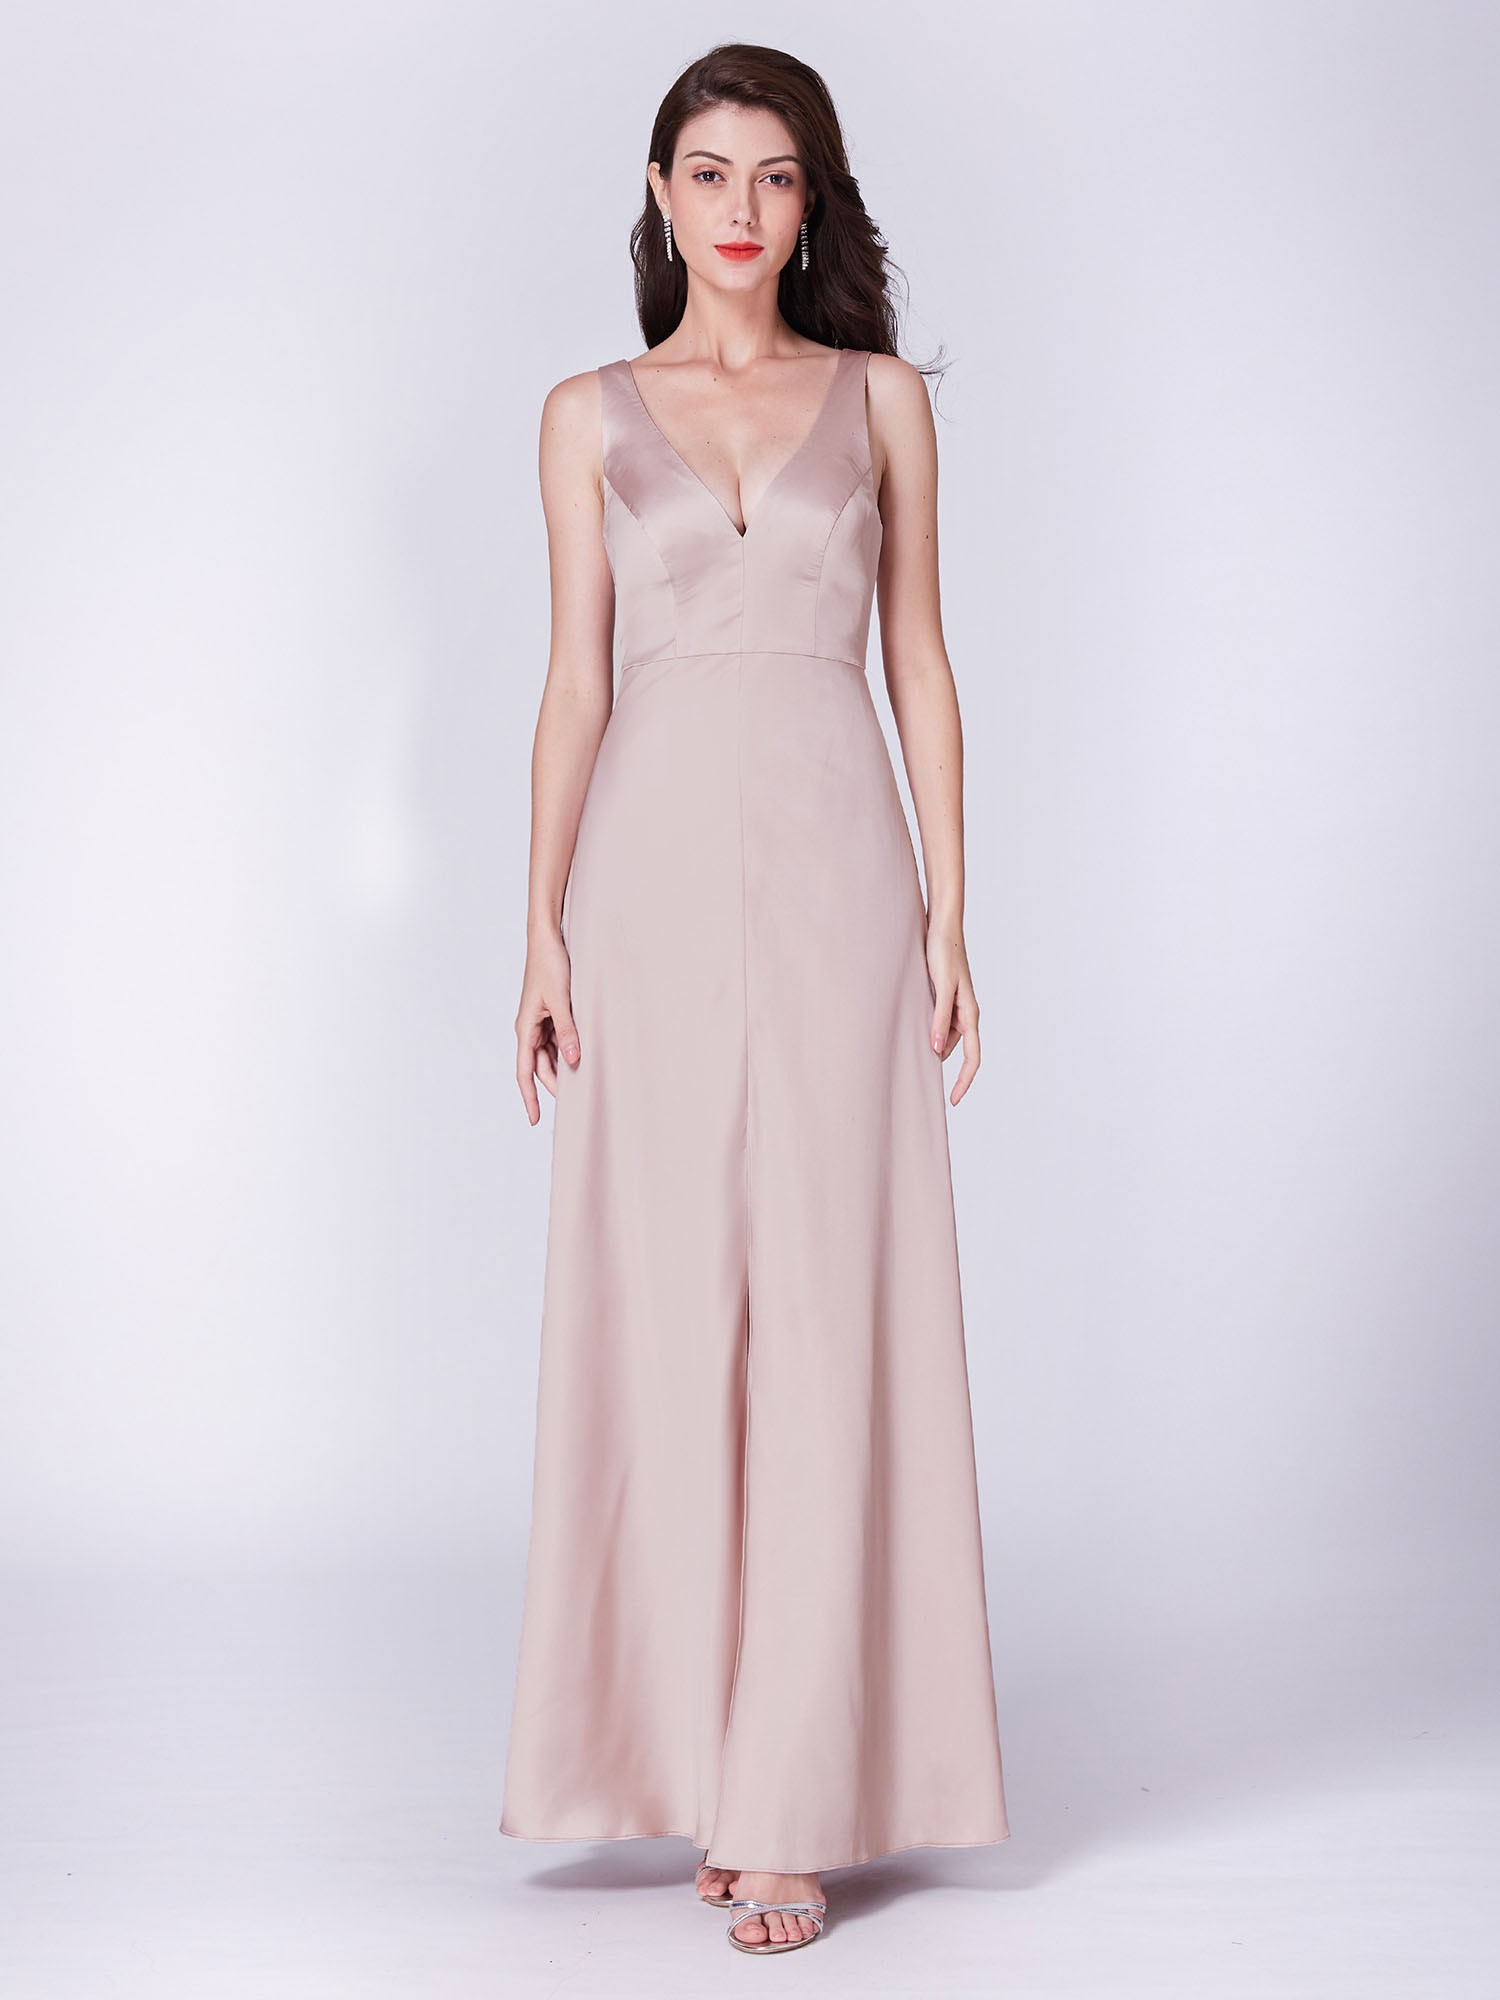 Satin V Neck Baby Pink Bridesmaid Dresses